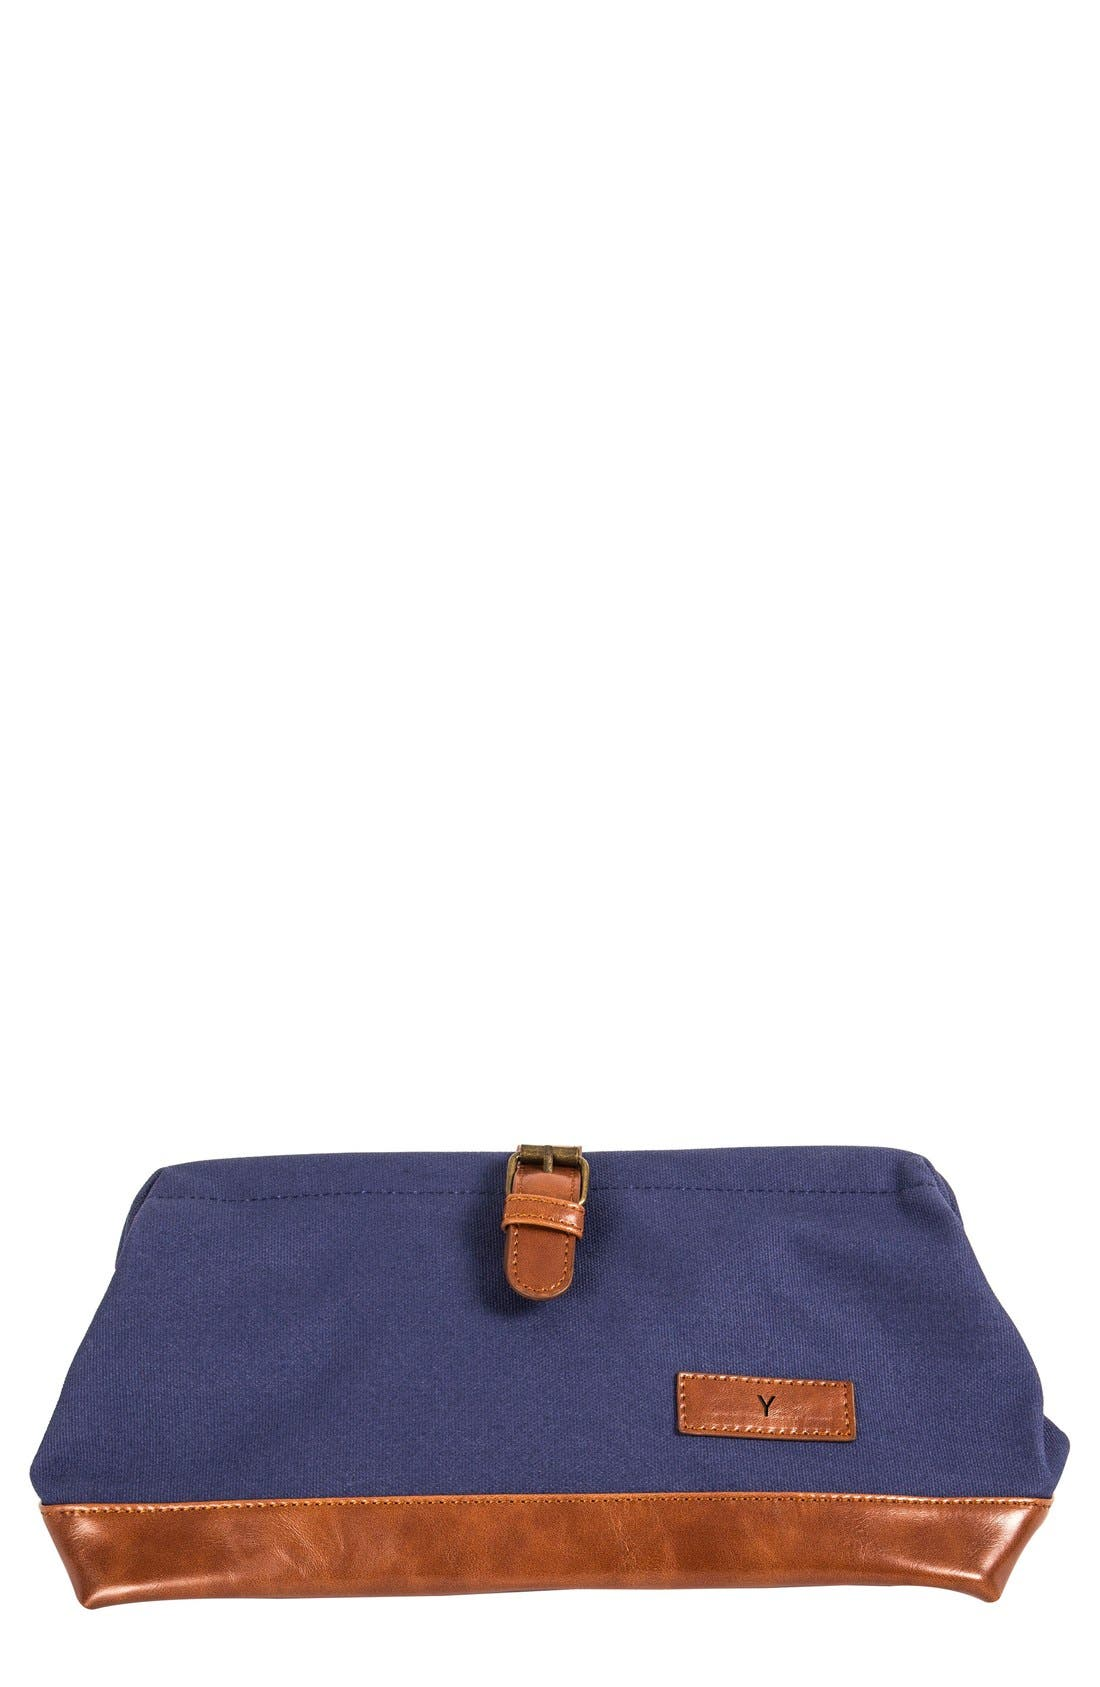 Monogram Travel Case,                             Main thumbnail 80, color,